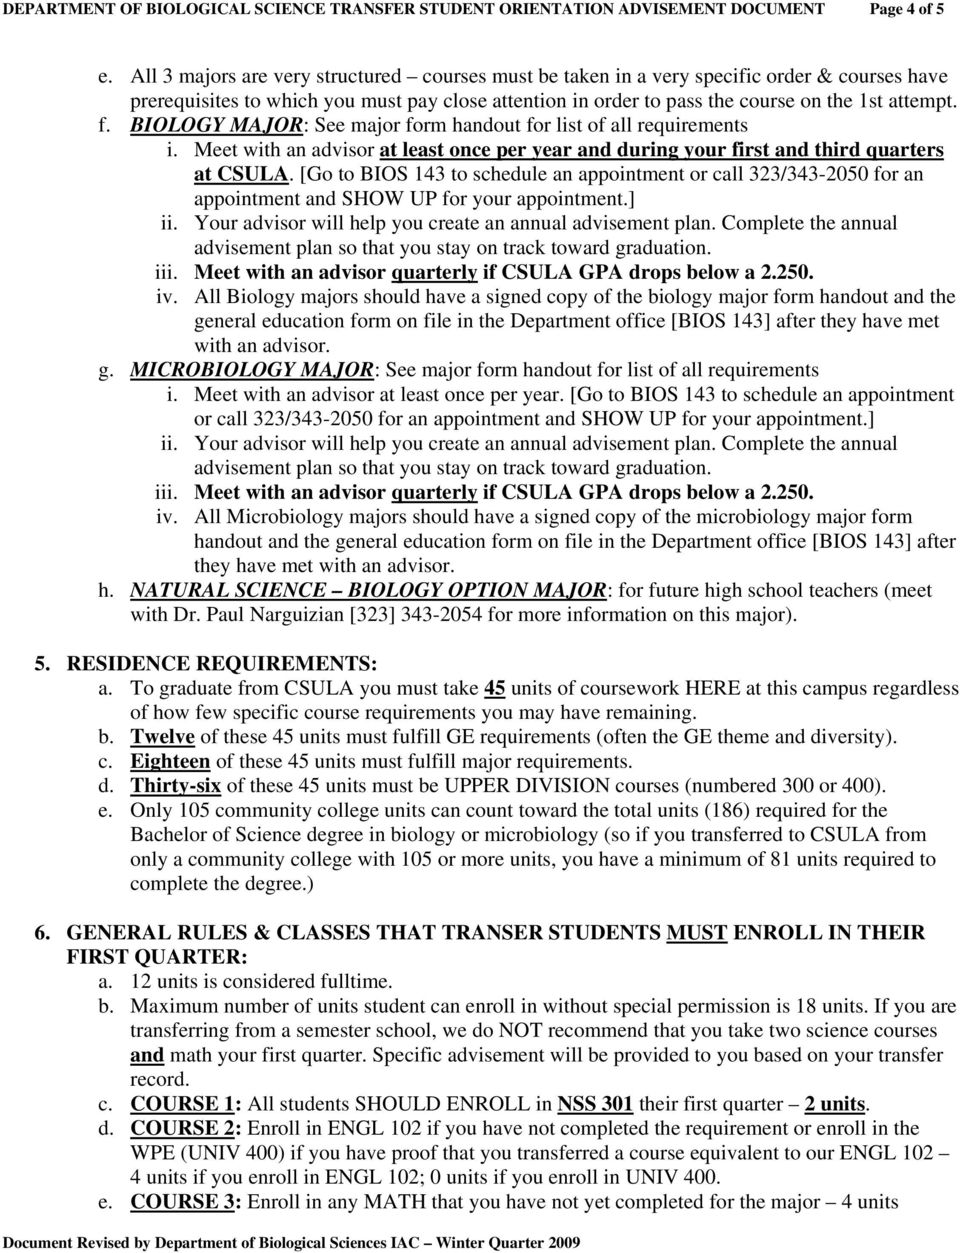 BIOLOGY MAJOR: See major form handout for list of all requirements i. Meet with an advisor at least once per year and during your first and third quarters at CSULA.